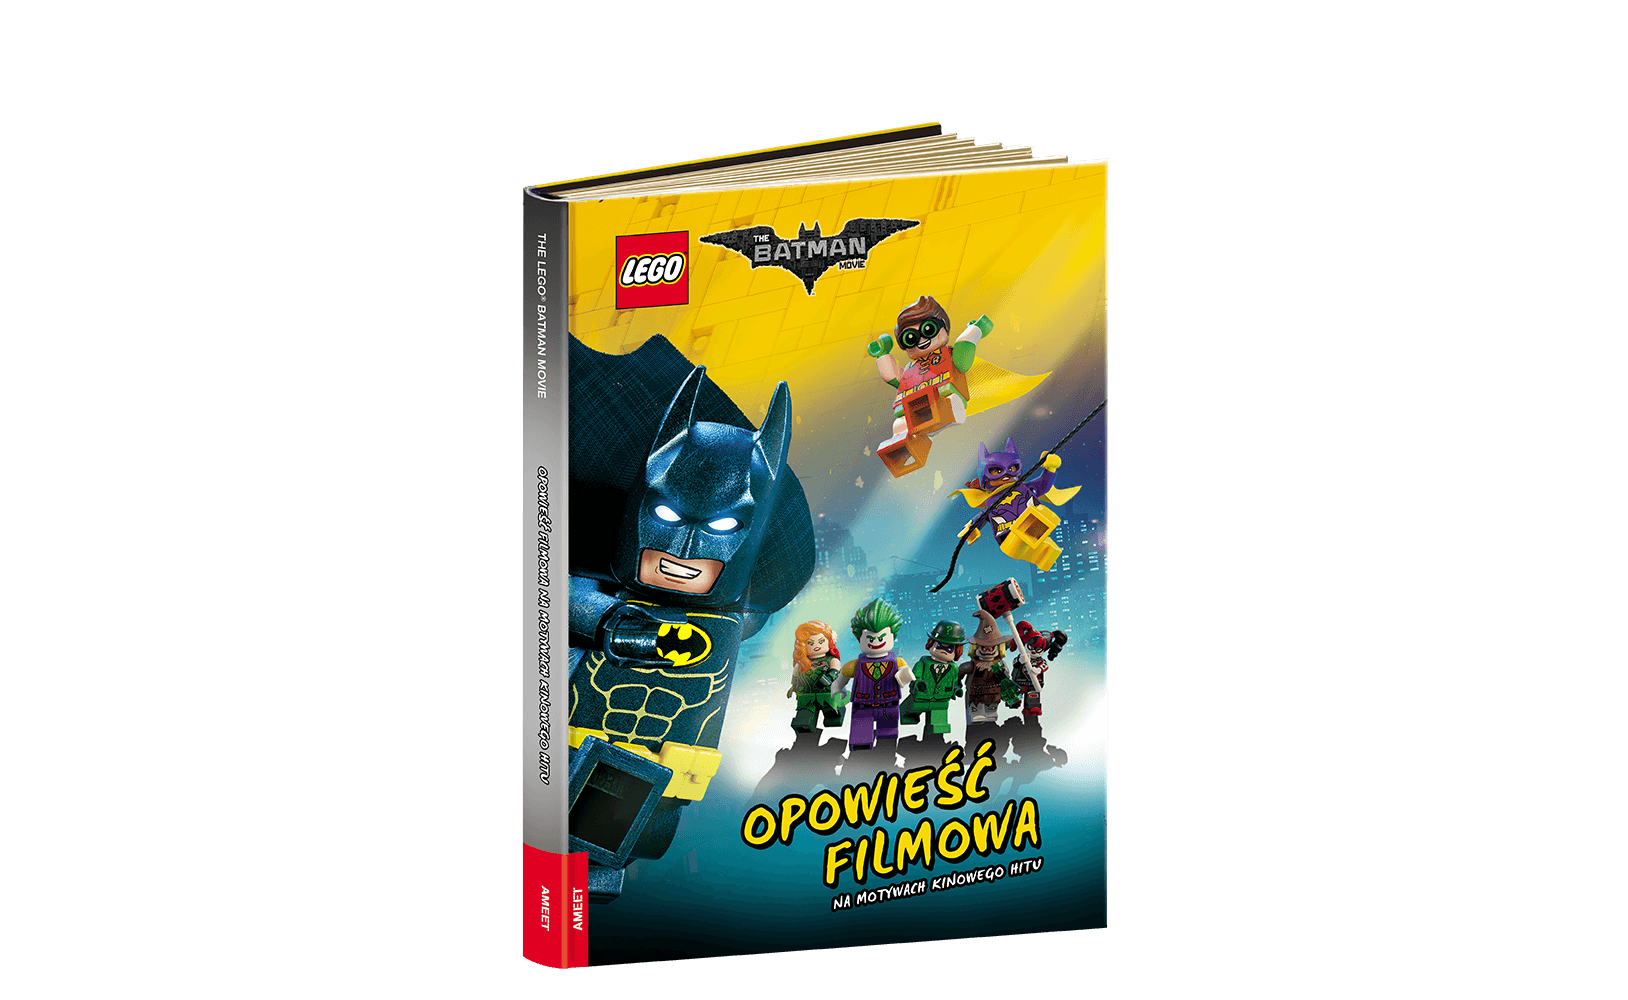 The LEGO® Batman Movie. Opowieść filmowa